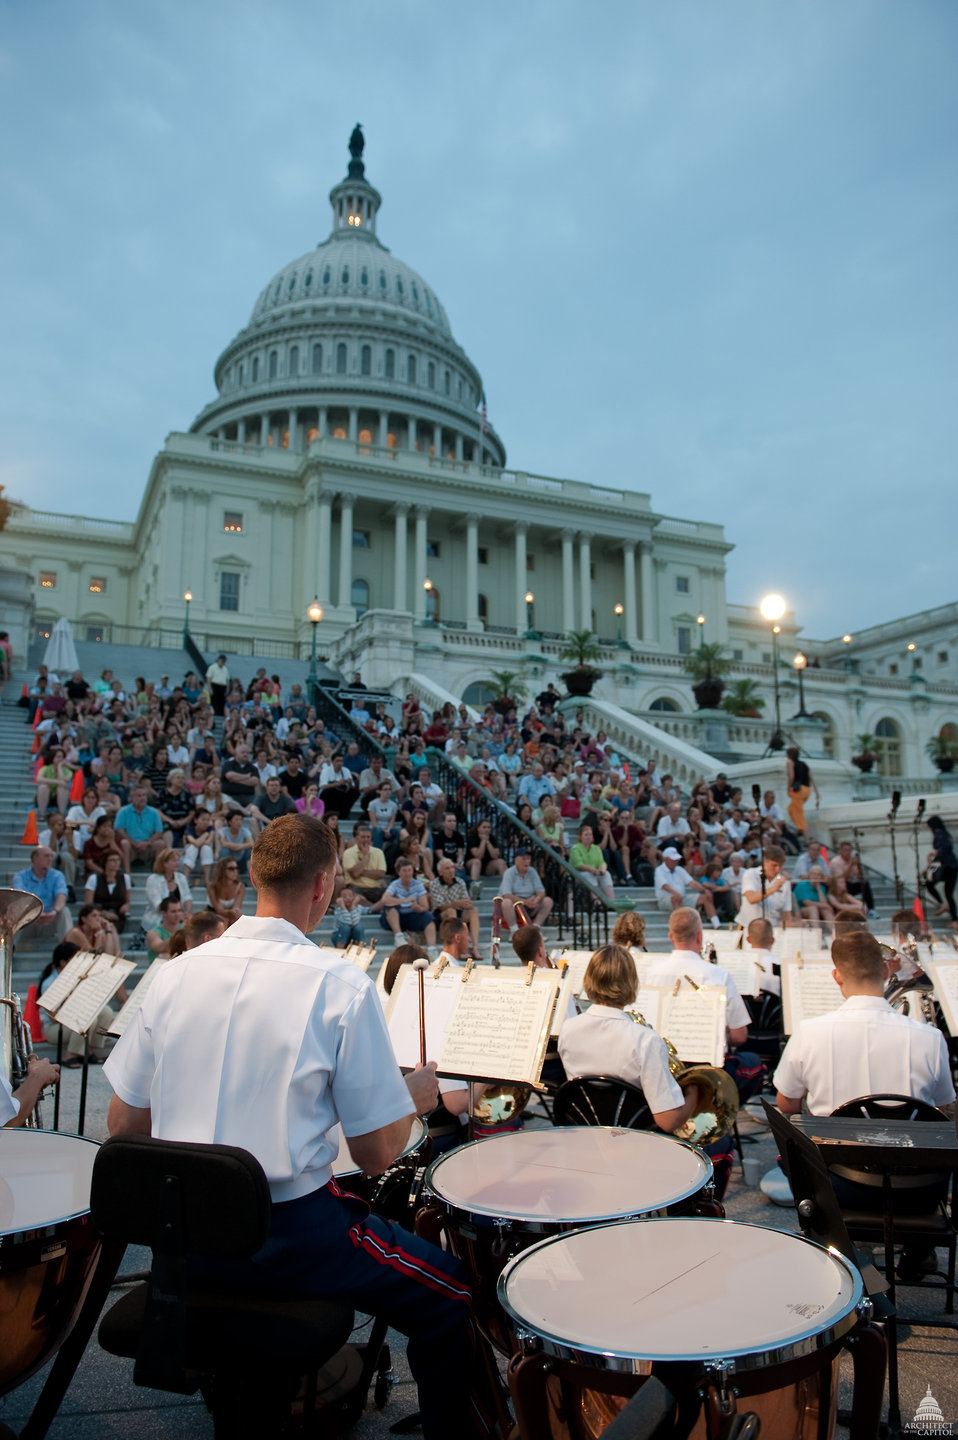 Military Band Concerts at the U.S. Capitol